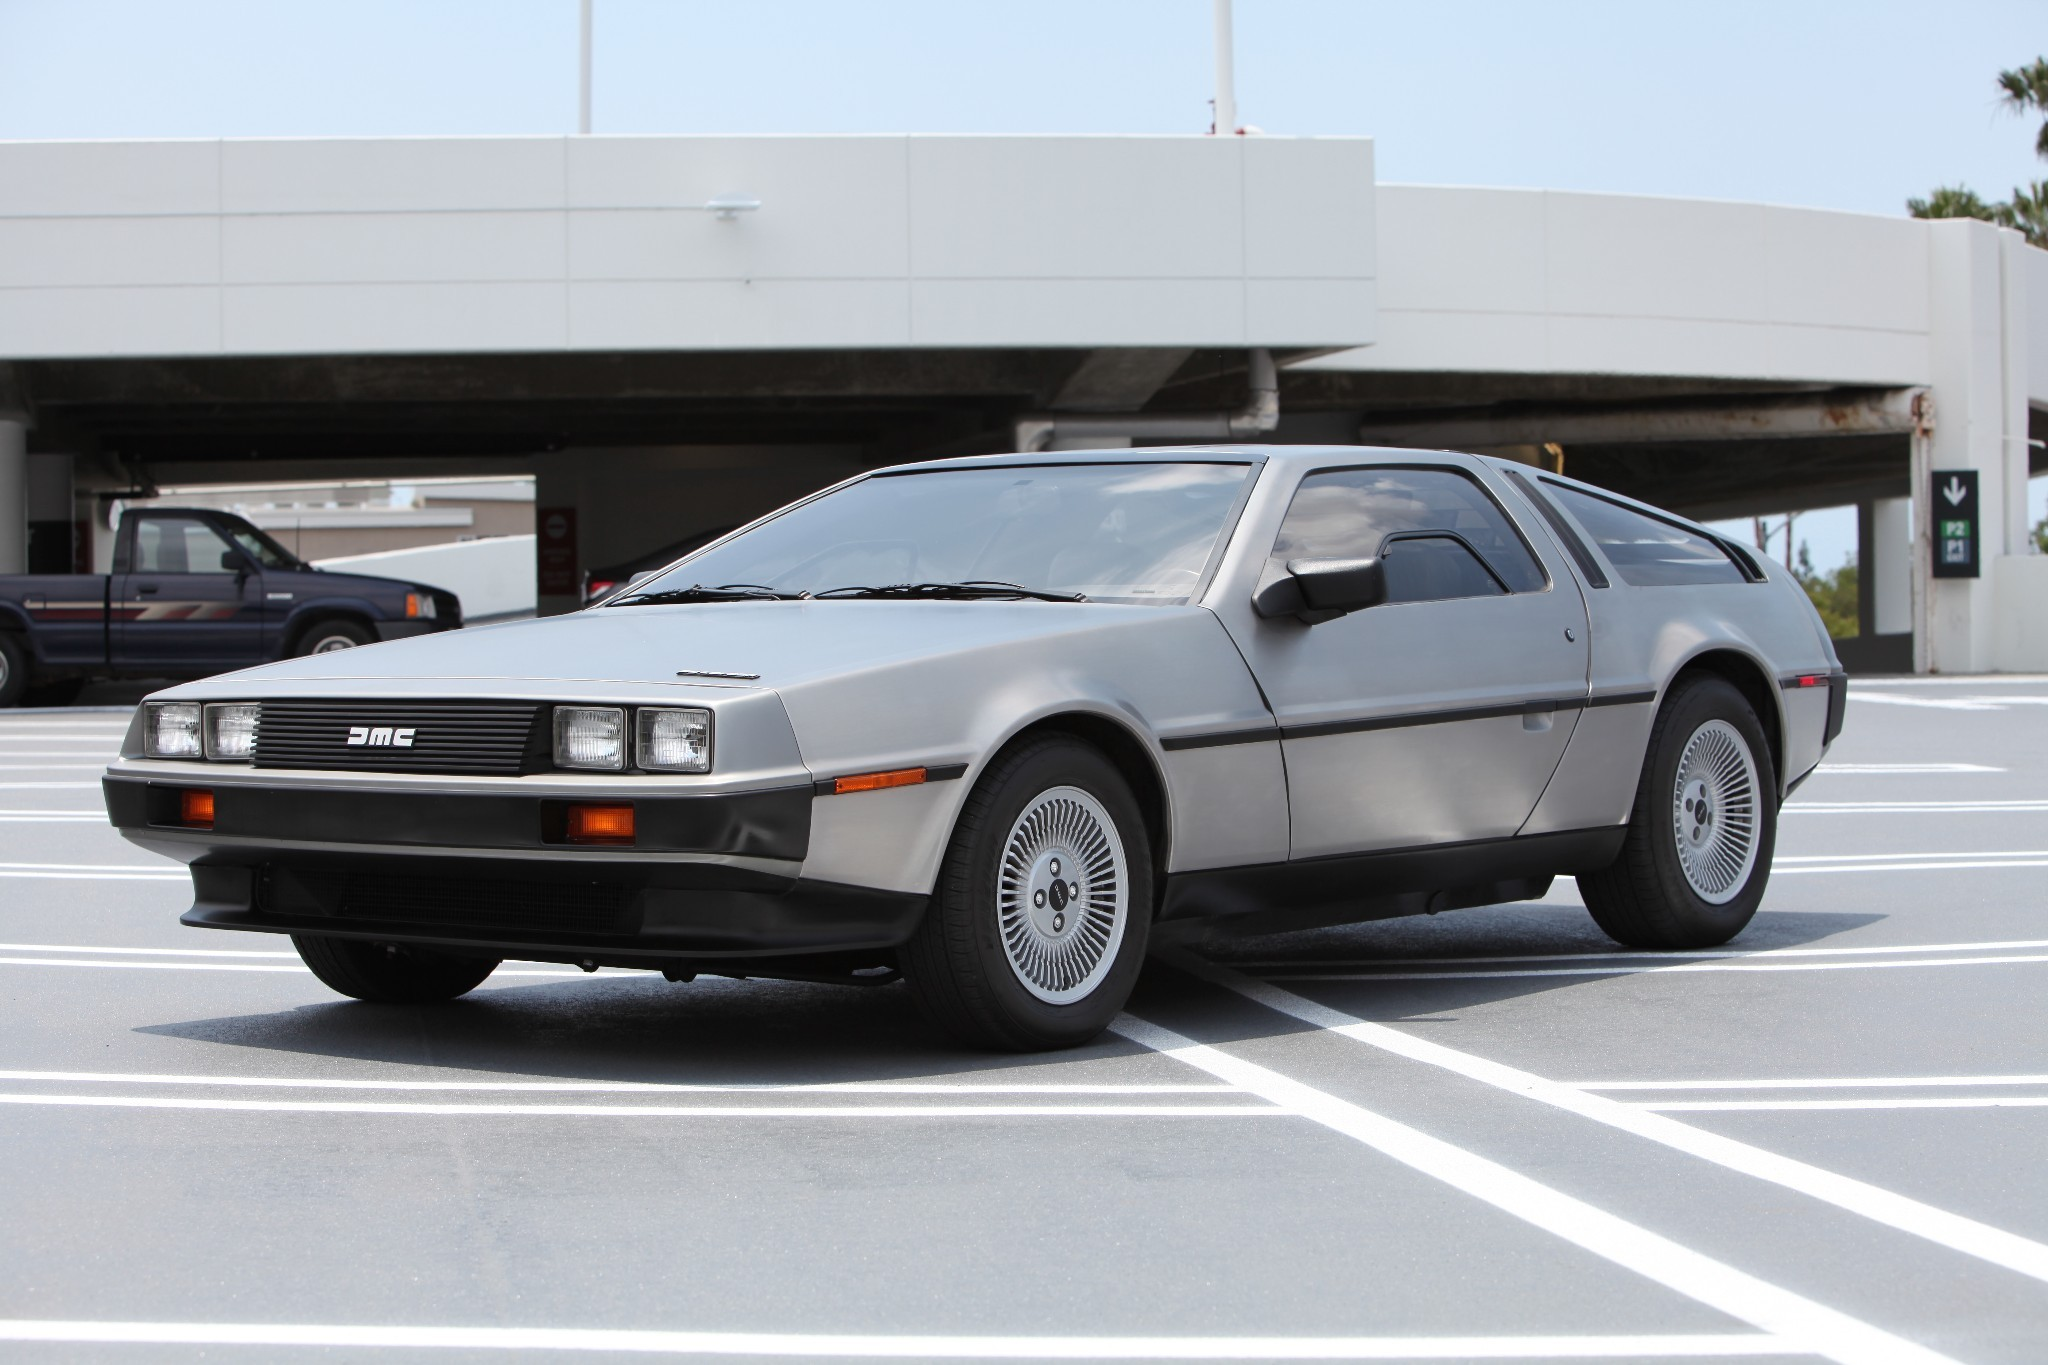 4 400 mile 1983 delorean dmc 12 on auction is 25 000 with six days left autoevolution. Black Bedroom Furniture Sets. Home Design Ideas